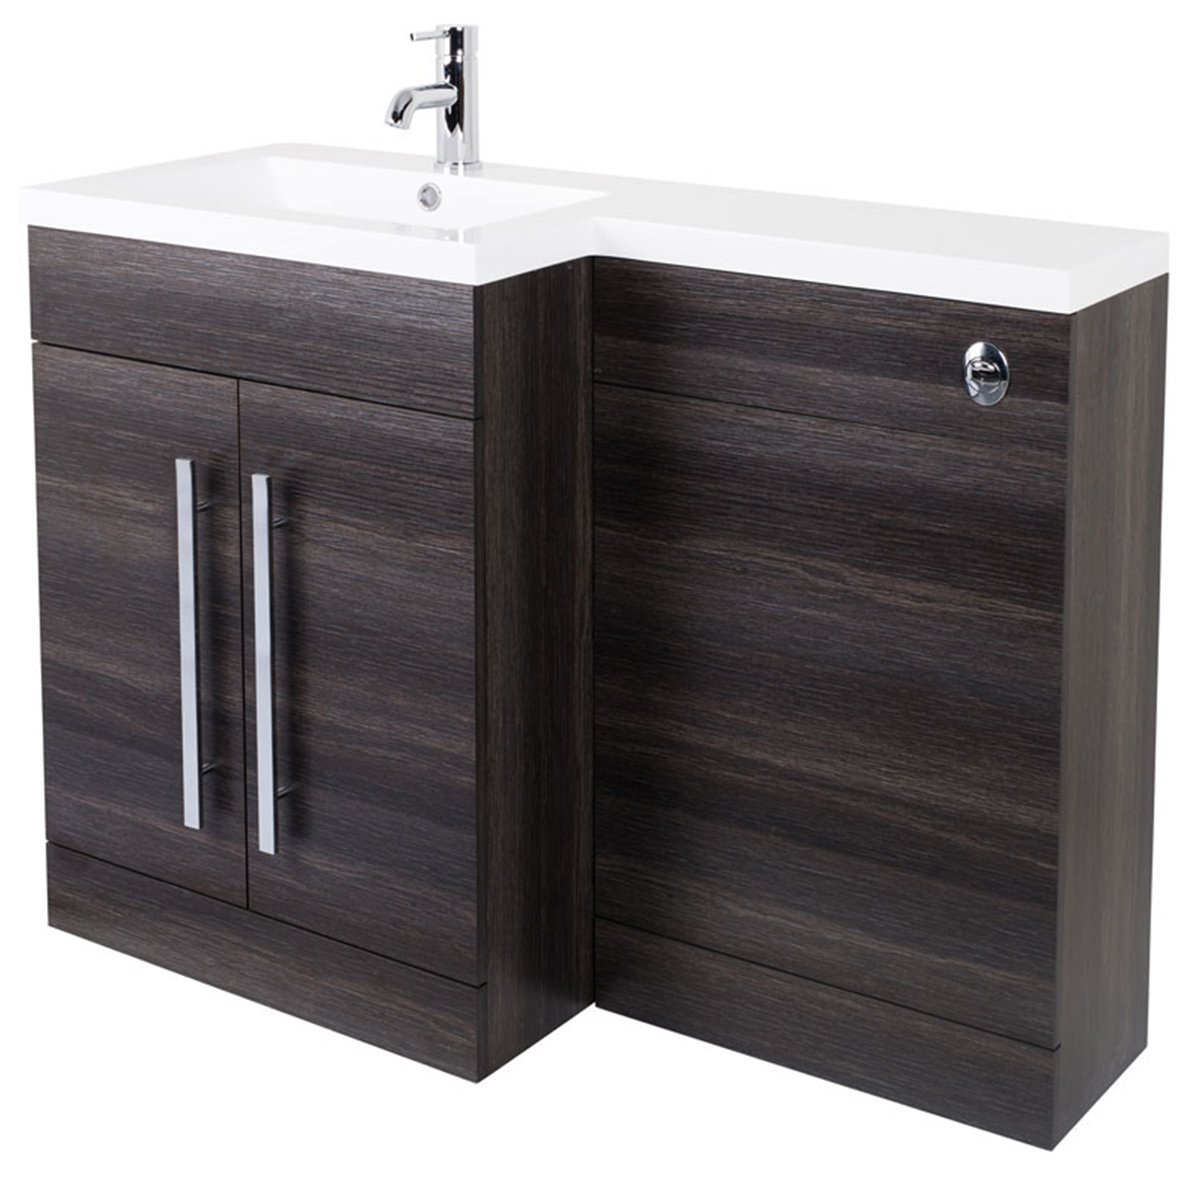 Luxury Bathroom Vanity Units Bathroom Vanity Unit Designer Furniture Suite Back To Wall